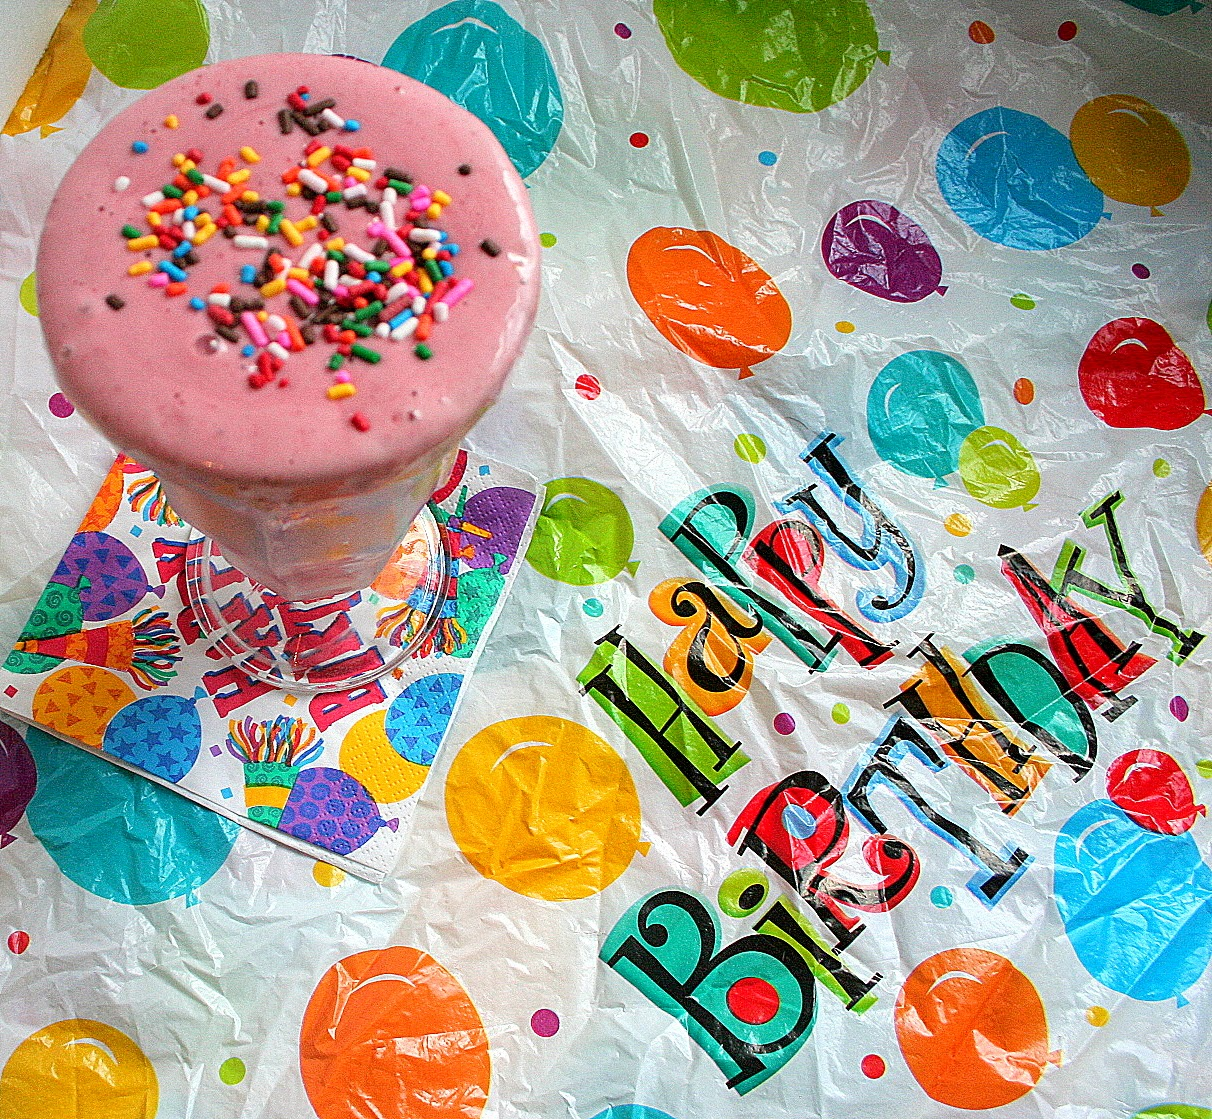 I Used My Birthday Cake AboutTime Protein Flavor That Only Has 4 Ingredients You Can Pronounce Cold Processed Ultra Micro Filtered Whey Isolate